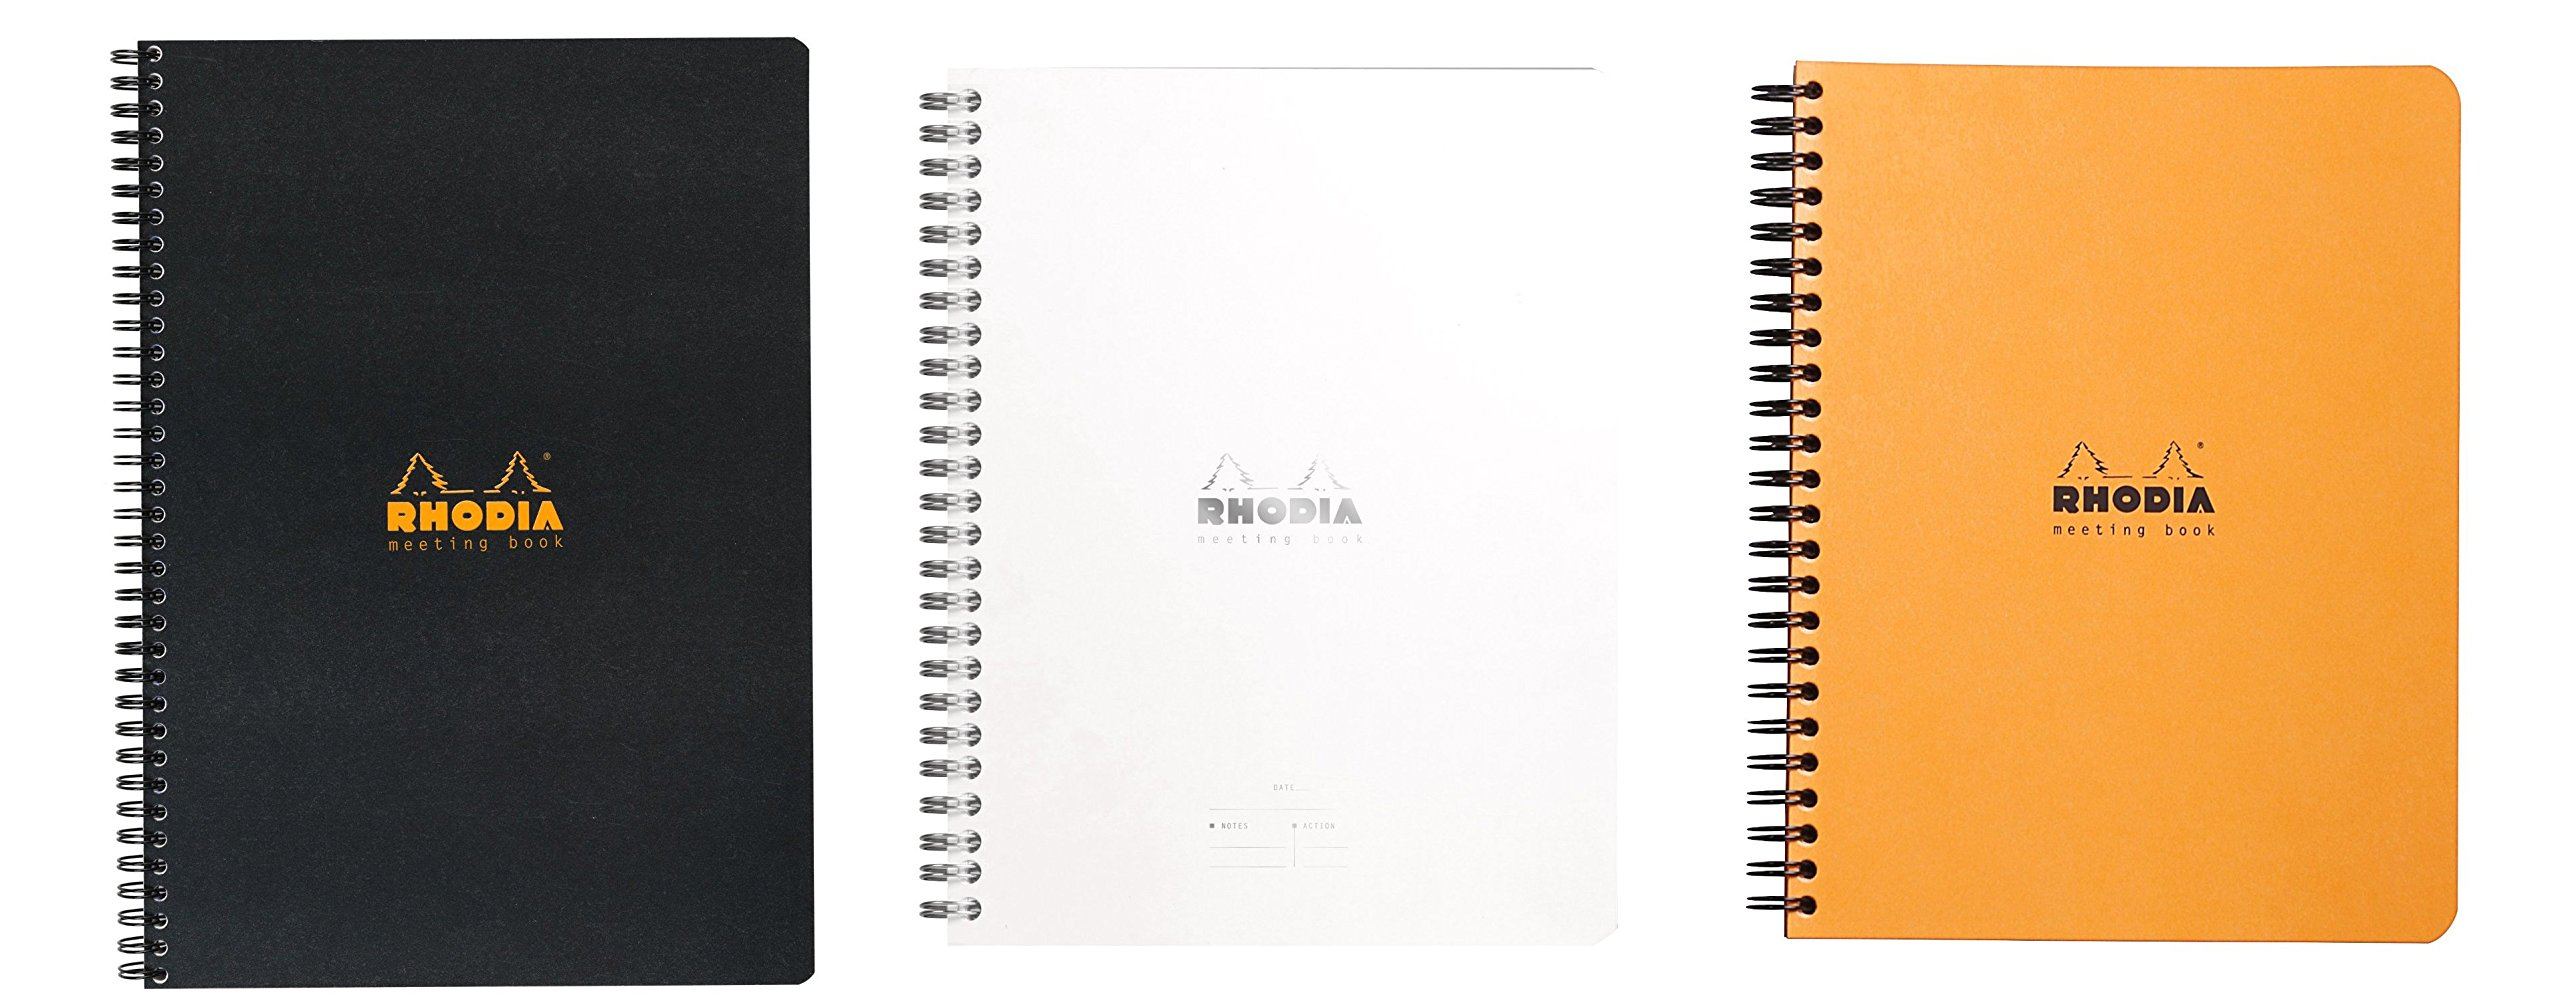 Rhodia Meeting Books 6 X 8 Inches, Pack of 3, Black, White and Orange